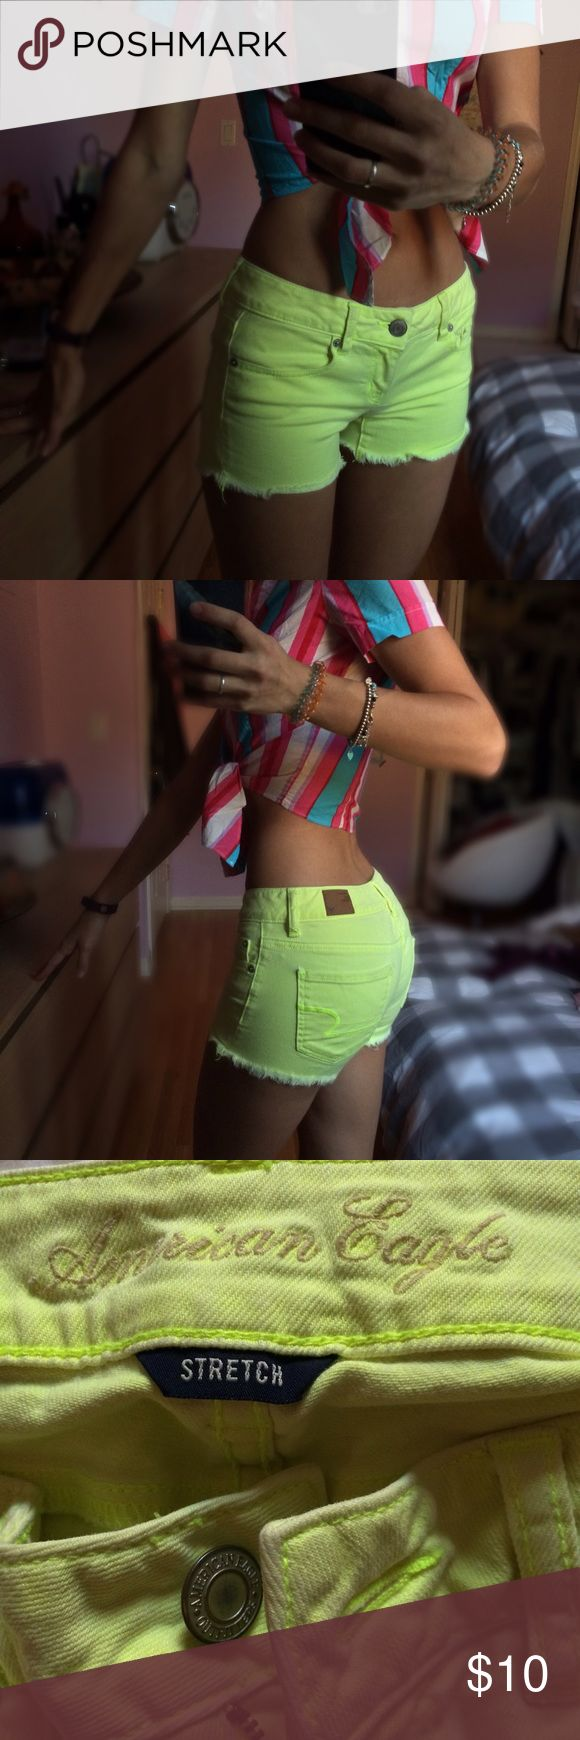 Neon yellow shorts These shorts make your tan look darker than it really is for some reason. Very comfortable to wear. Has front and back pockets. American Eagle Outfitters Shorts Jean Shorts